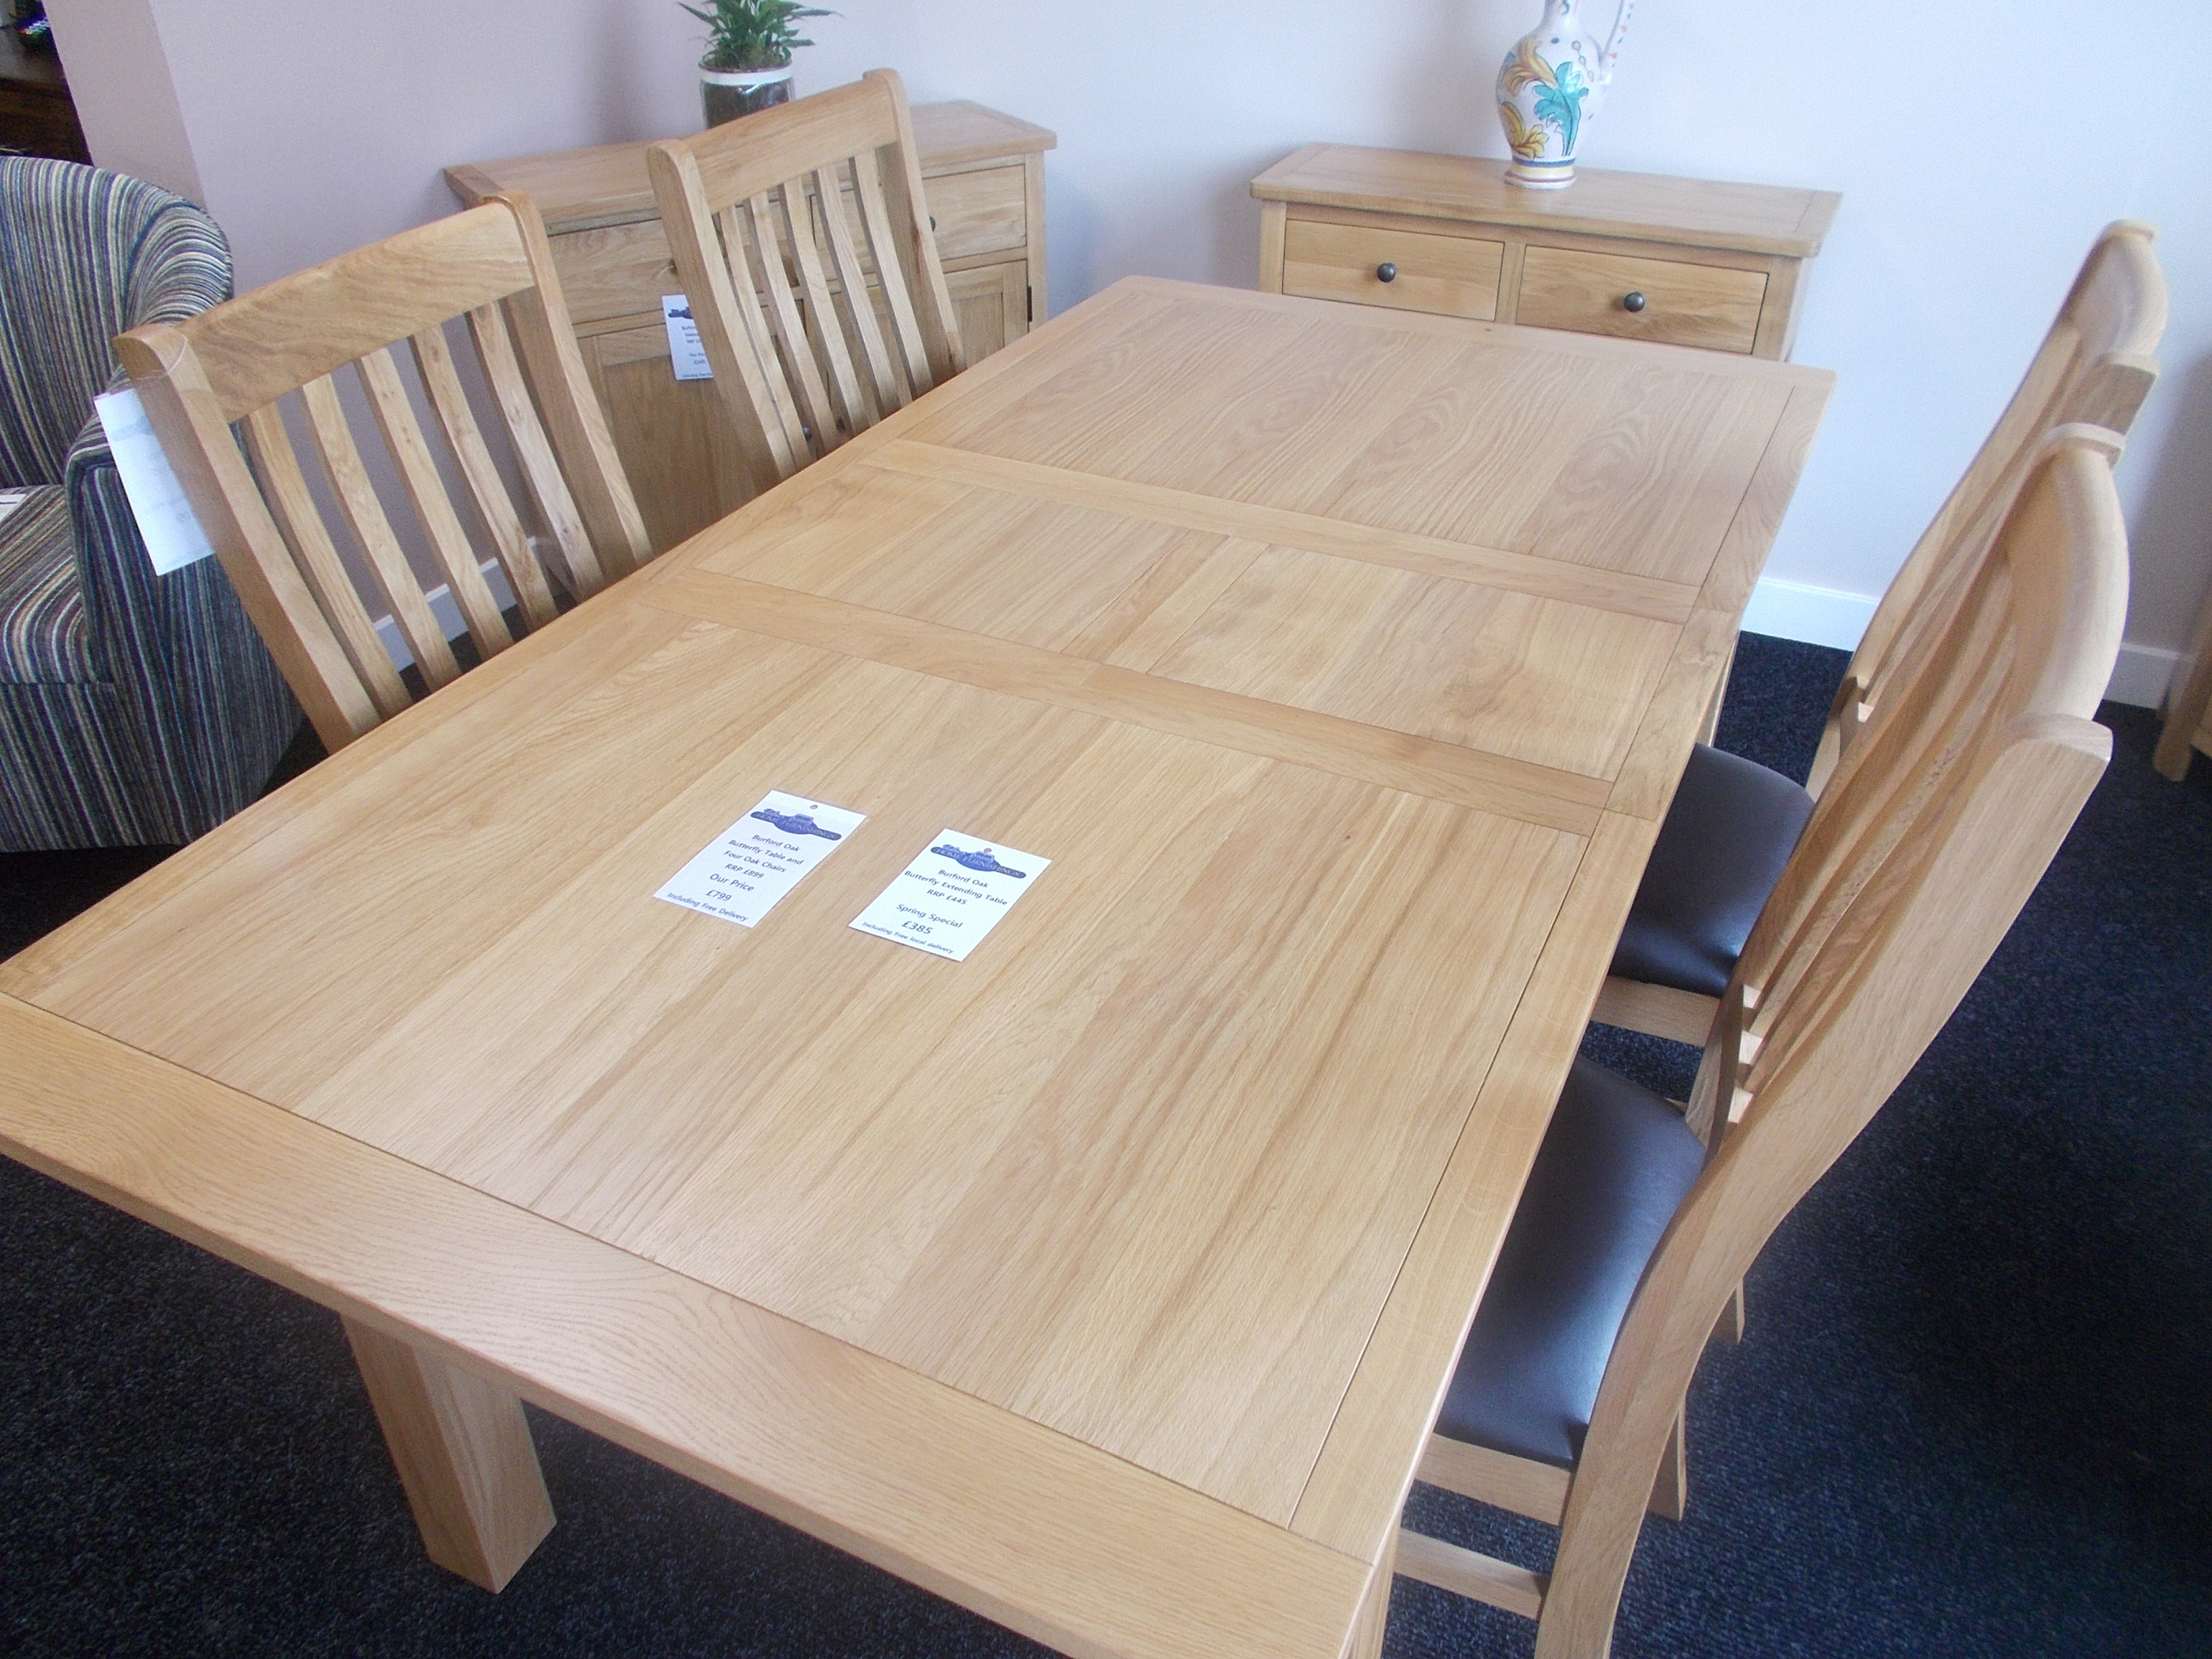 Burford Table and Chairs